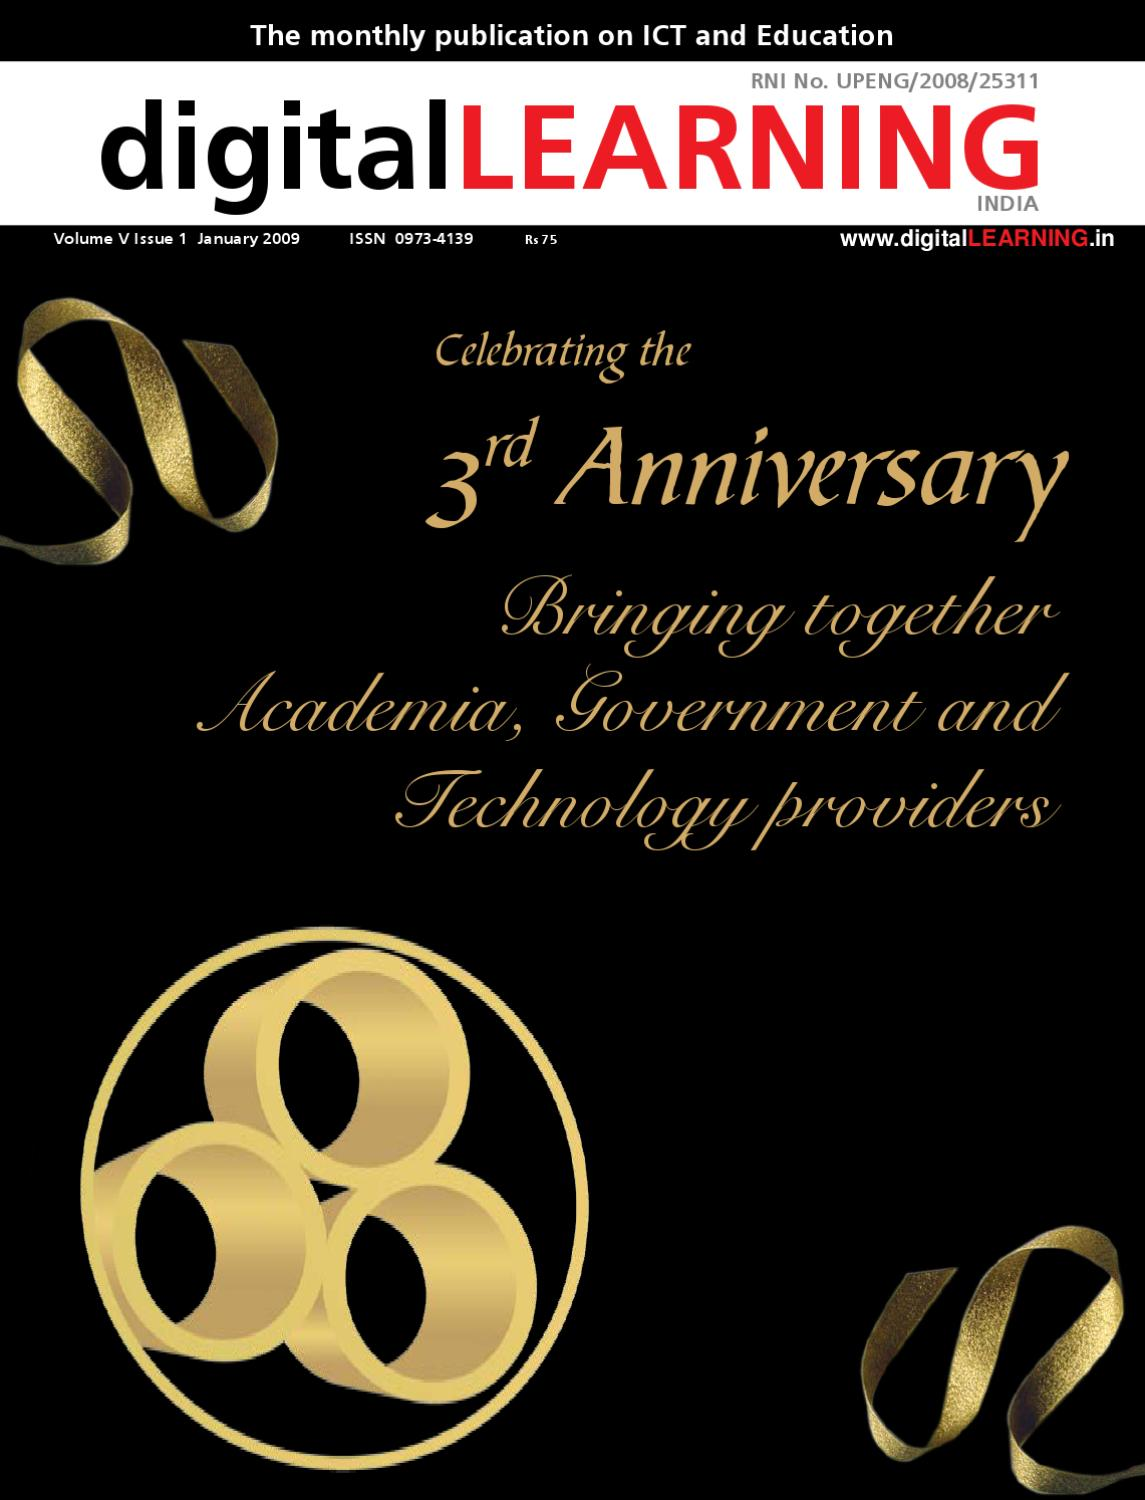 Bringing Together Academia Government And Technology Providers How To Read Electrical Drawings Tutorvista Answers January 2009 Anniversary Issue By Digital Learning Magazine Elets Technomedia Pvt Ltd